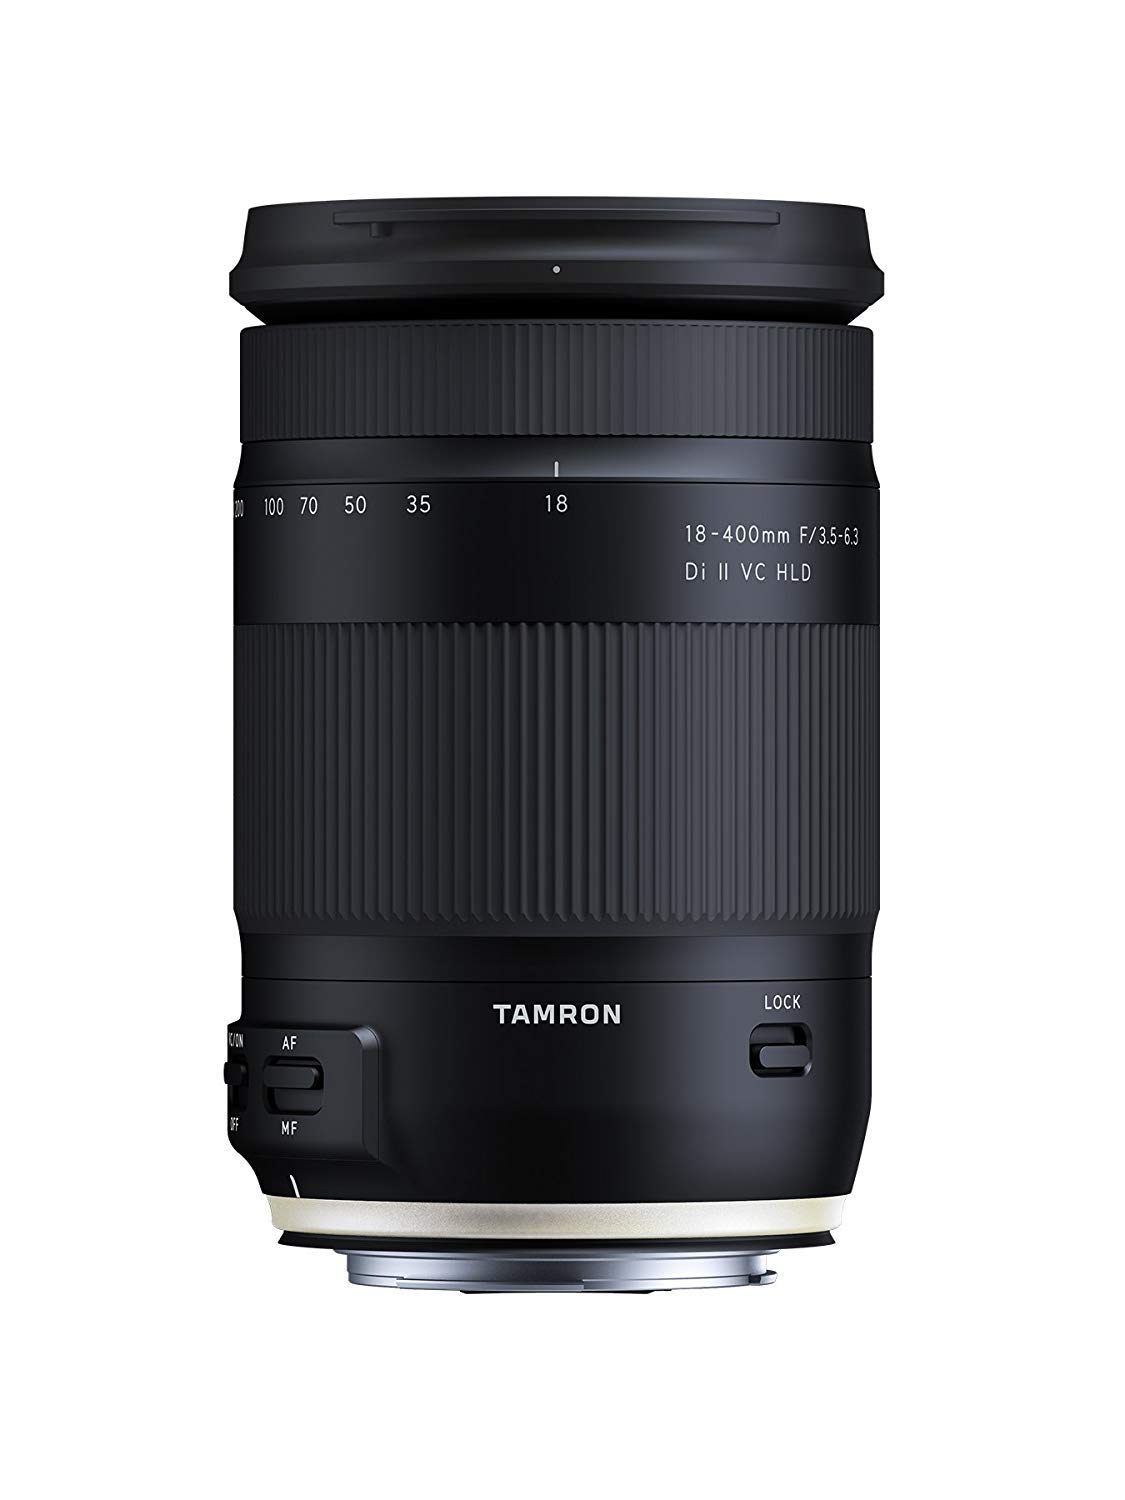 Tamron 18-400mm F/3.5-6.3 DI-II VC HLD All-in-One Zoom for Canon APS-C Digital SLR Cameras (6 Year Limited USA Warranty) by Tamron